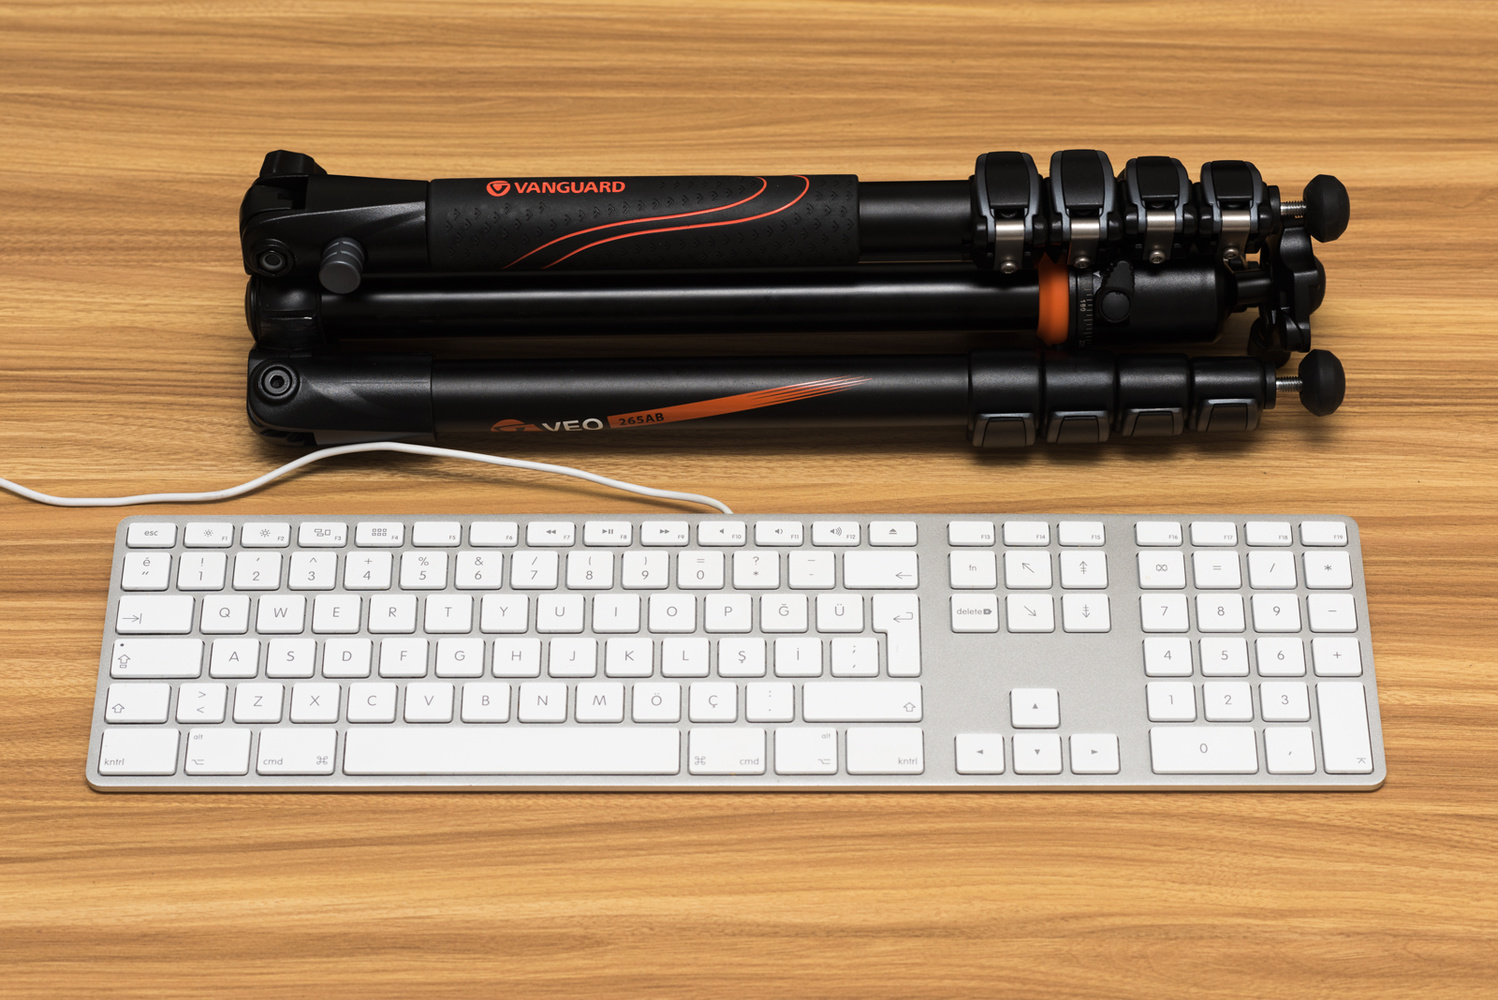 fstoppers reviews the vanguard veo 265ab compact travel tripod